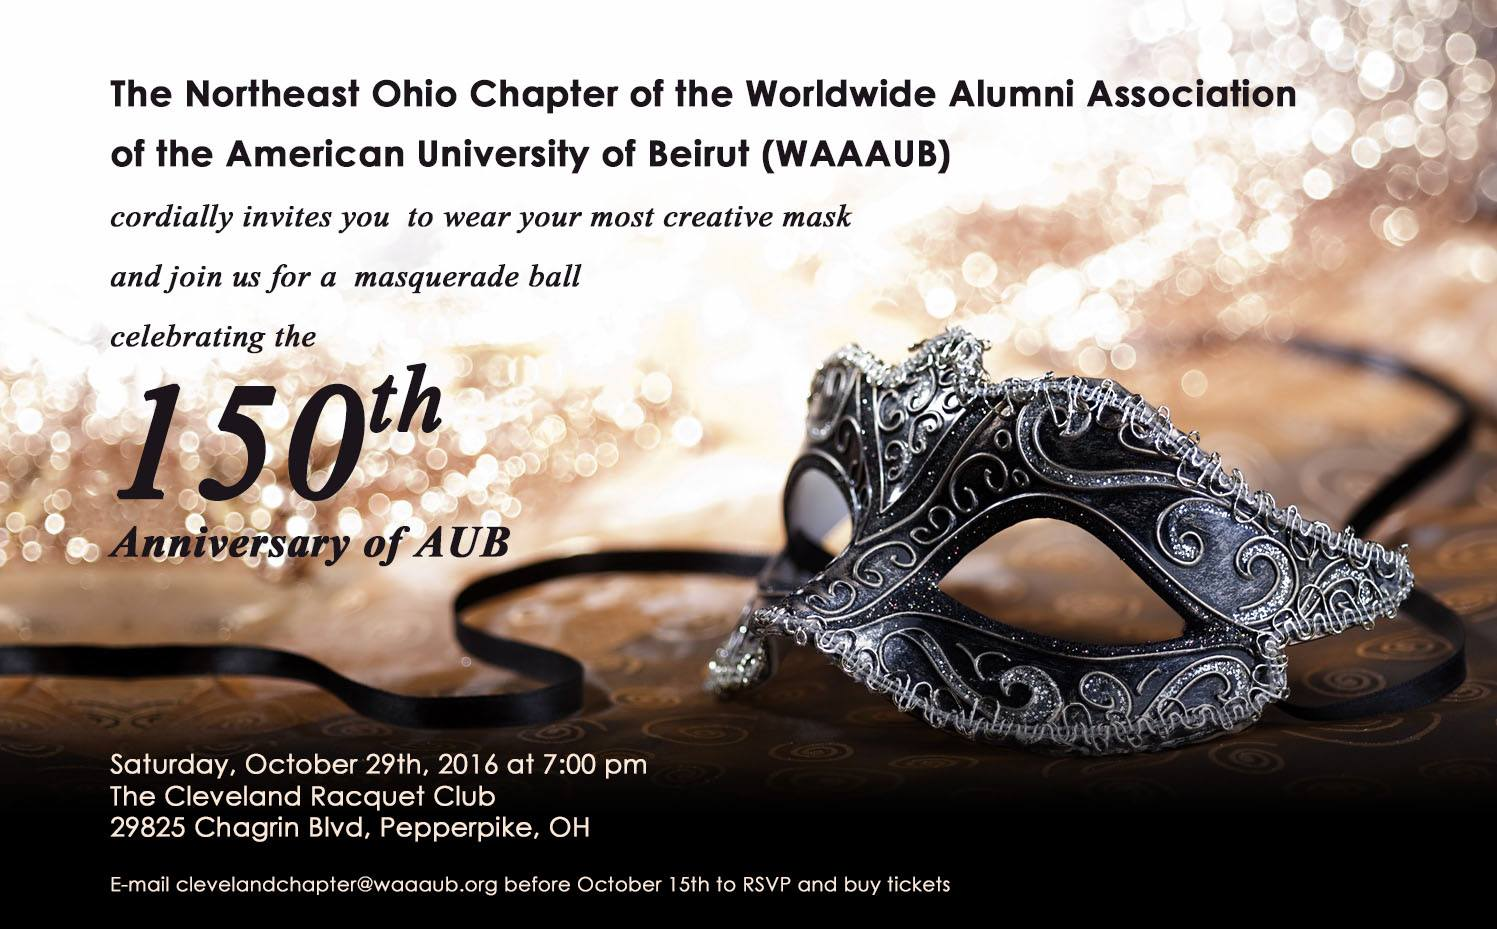 Cleveland Chapter Masquerade Ball